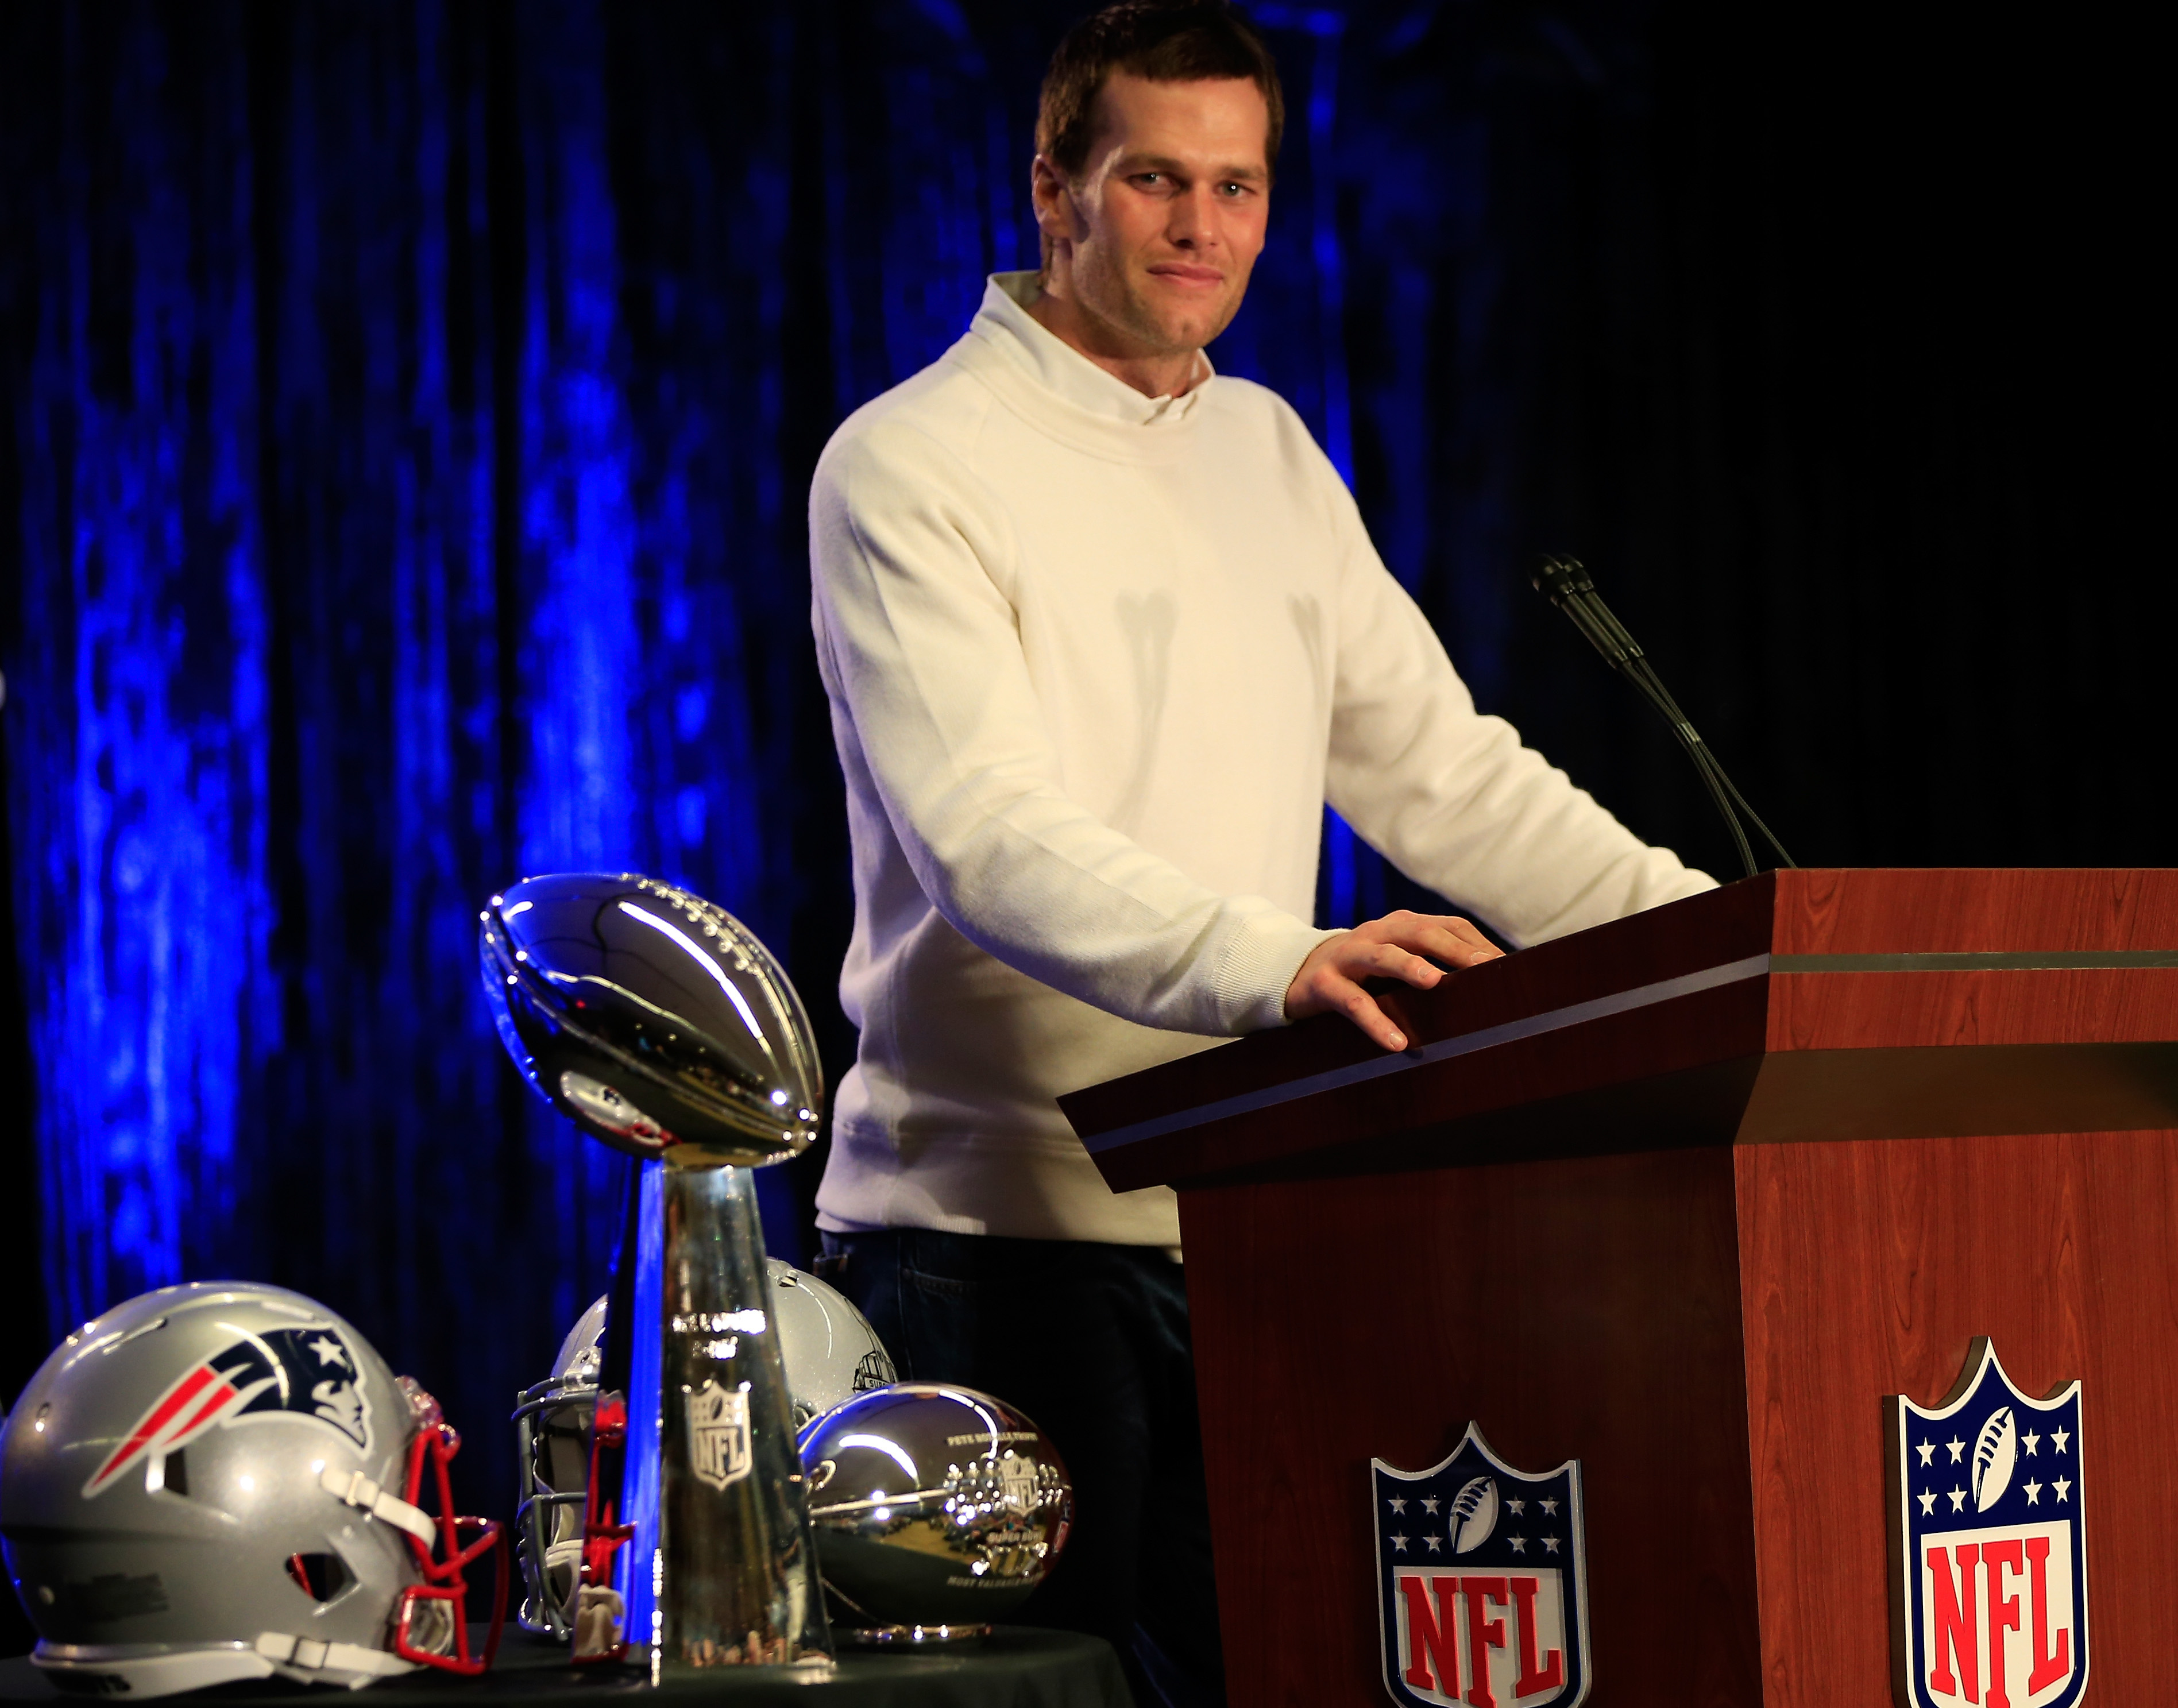 NFL Report: 'More Probable Than Not' That Patriots Workers Tampered With Footballs